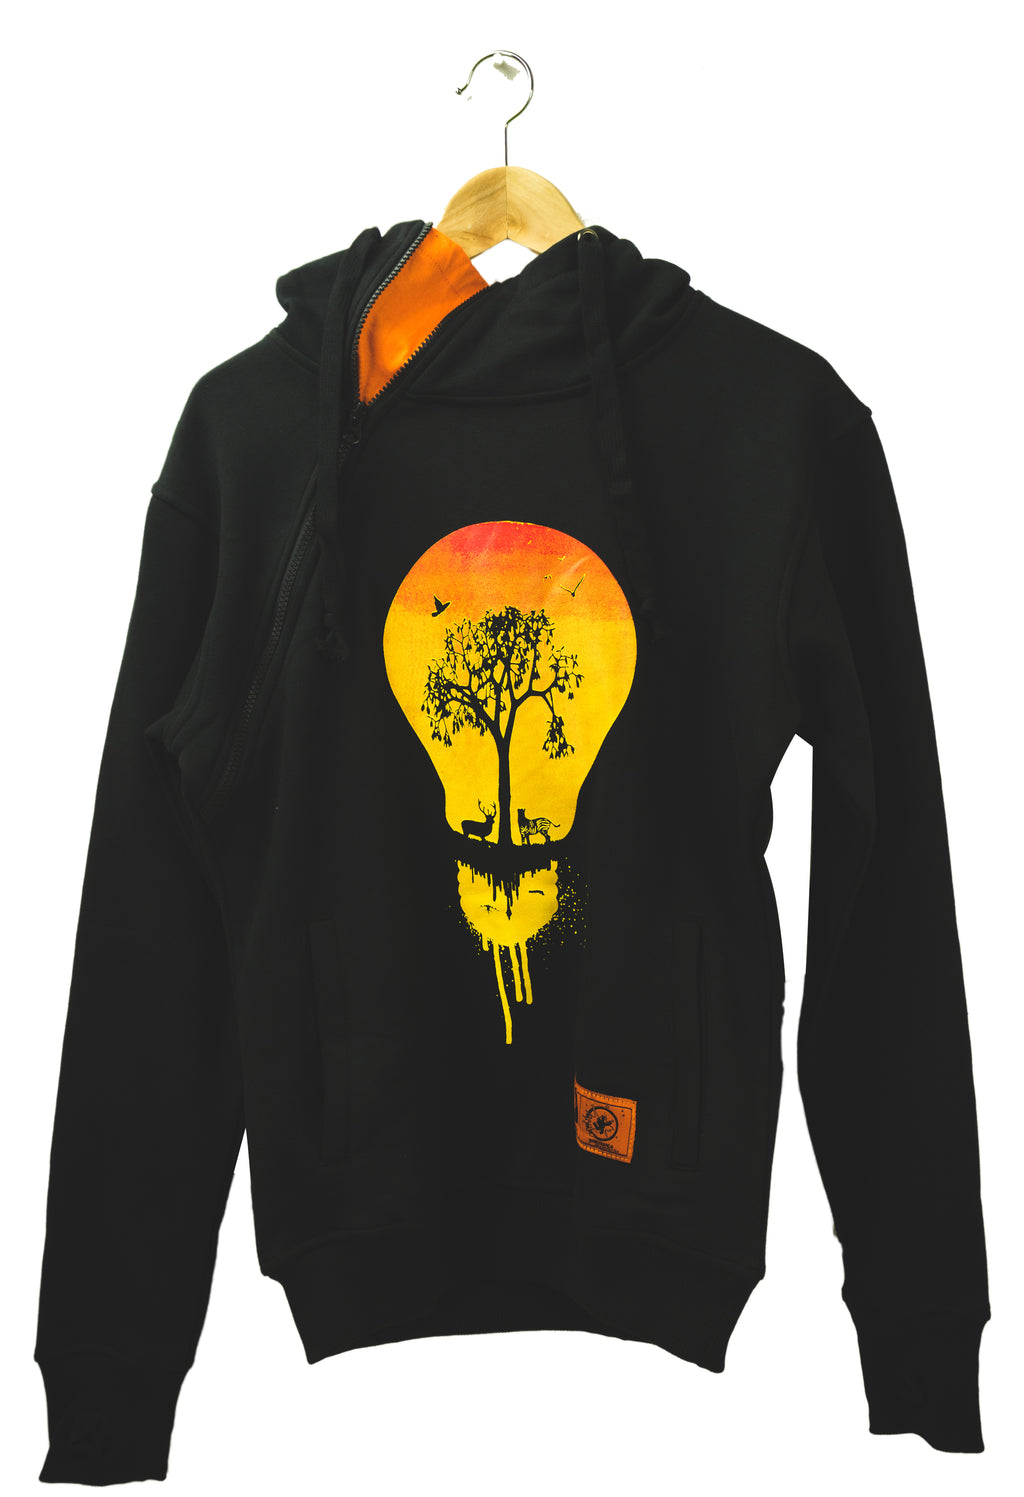 The two worlds Hoodie